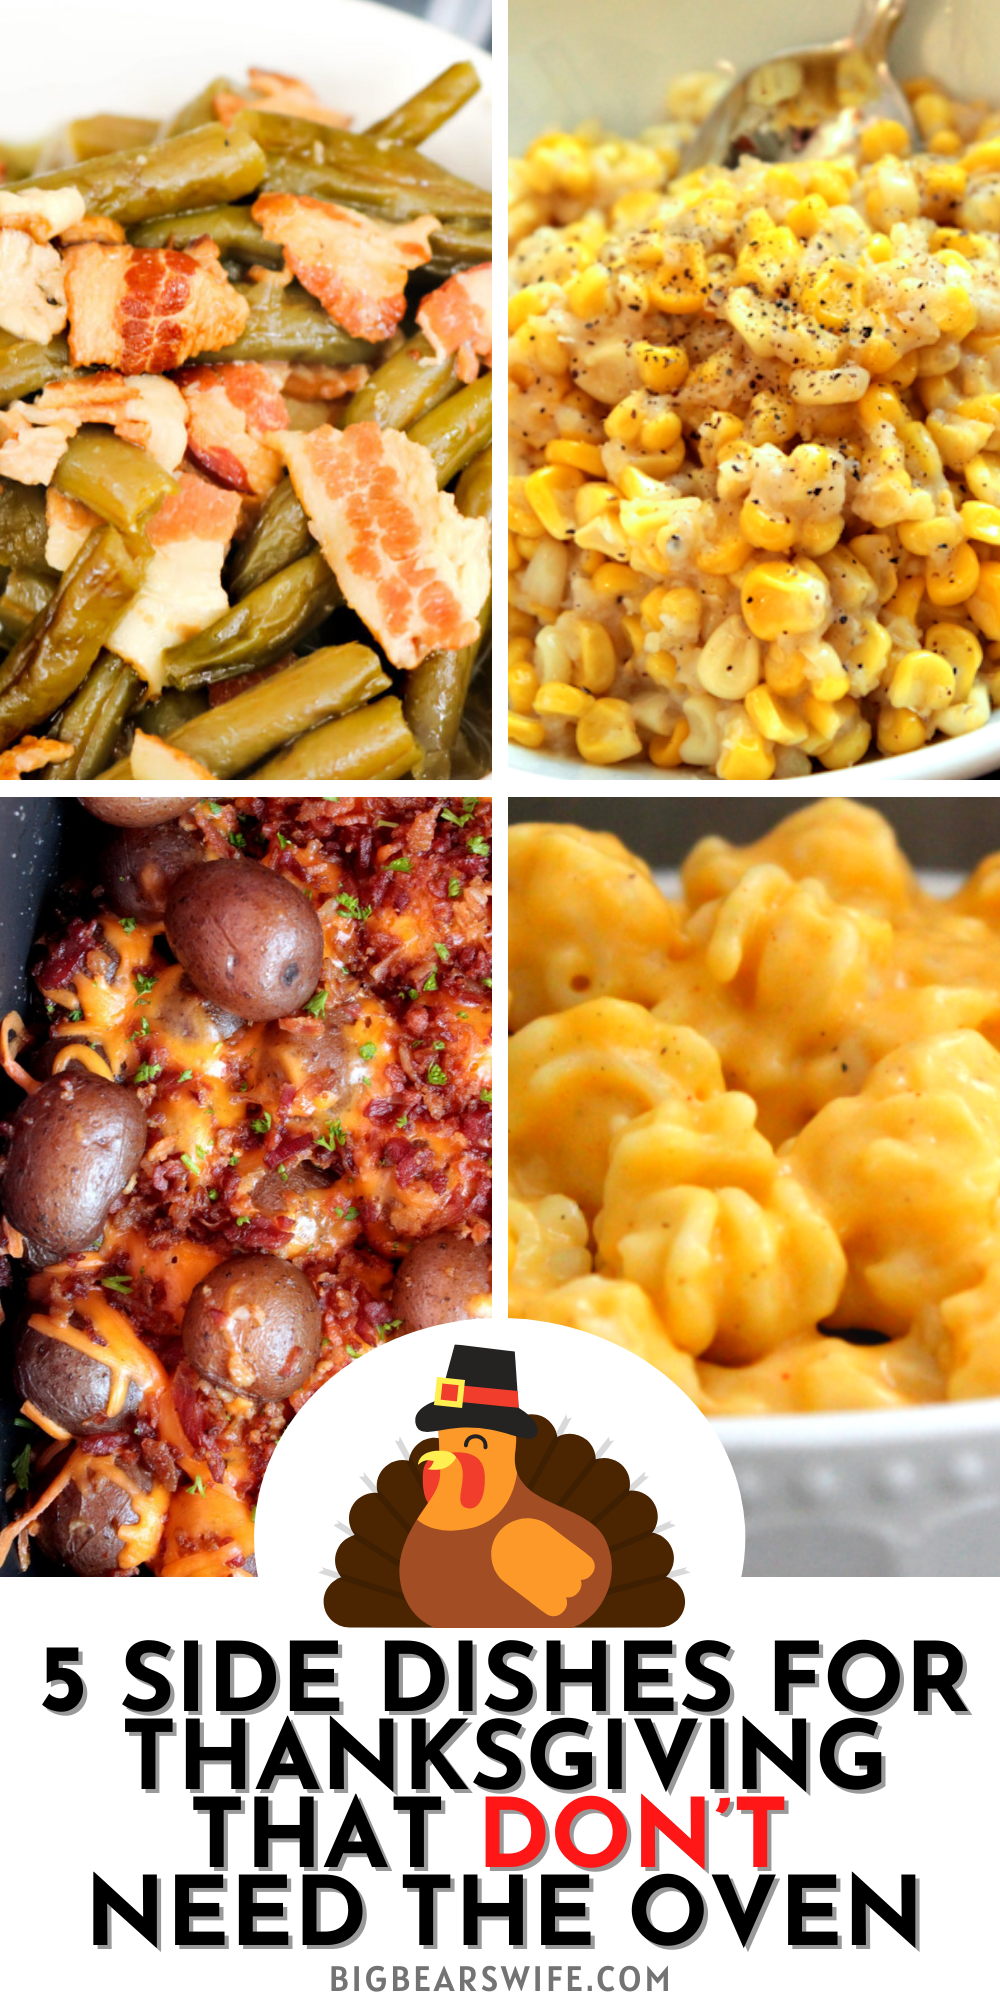 Oven packed to the rim with Turkey and Ham for Thanksgiving? Here are 5 Side Dishes for Thanksgiving that DON'T need the oven!